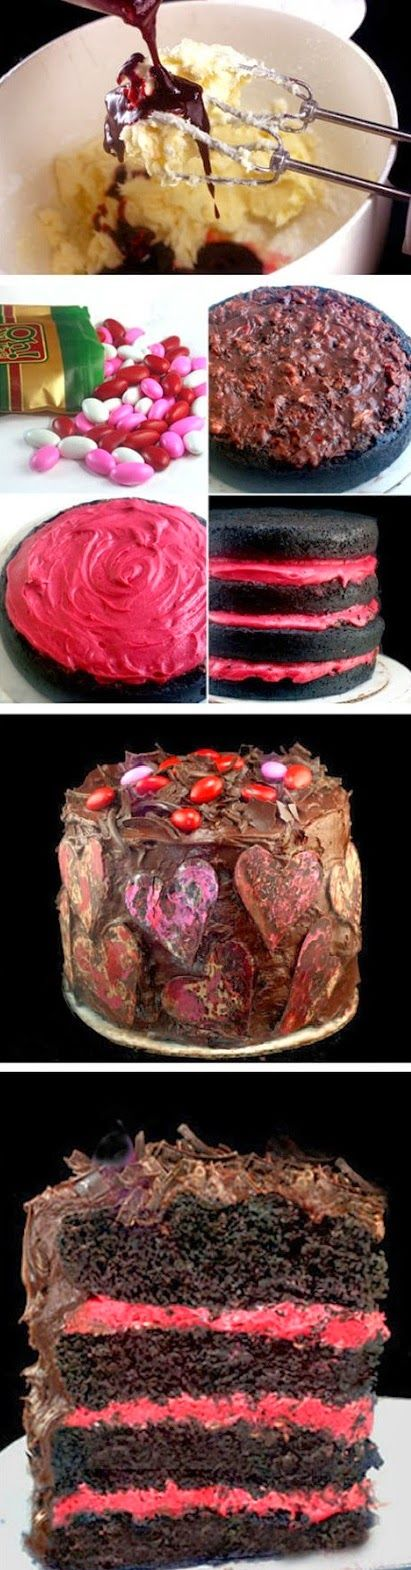 Rustic Chocolate Raspberry Almond Valentine Cake - not for me, but the idea of coloring the cake filling to match decoration!